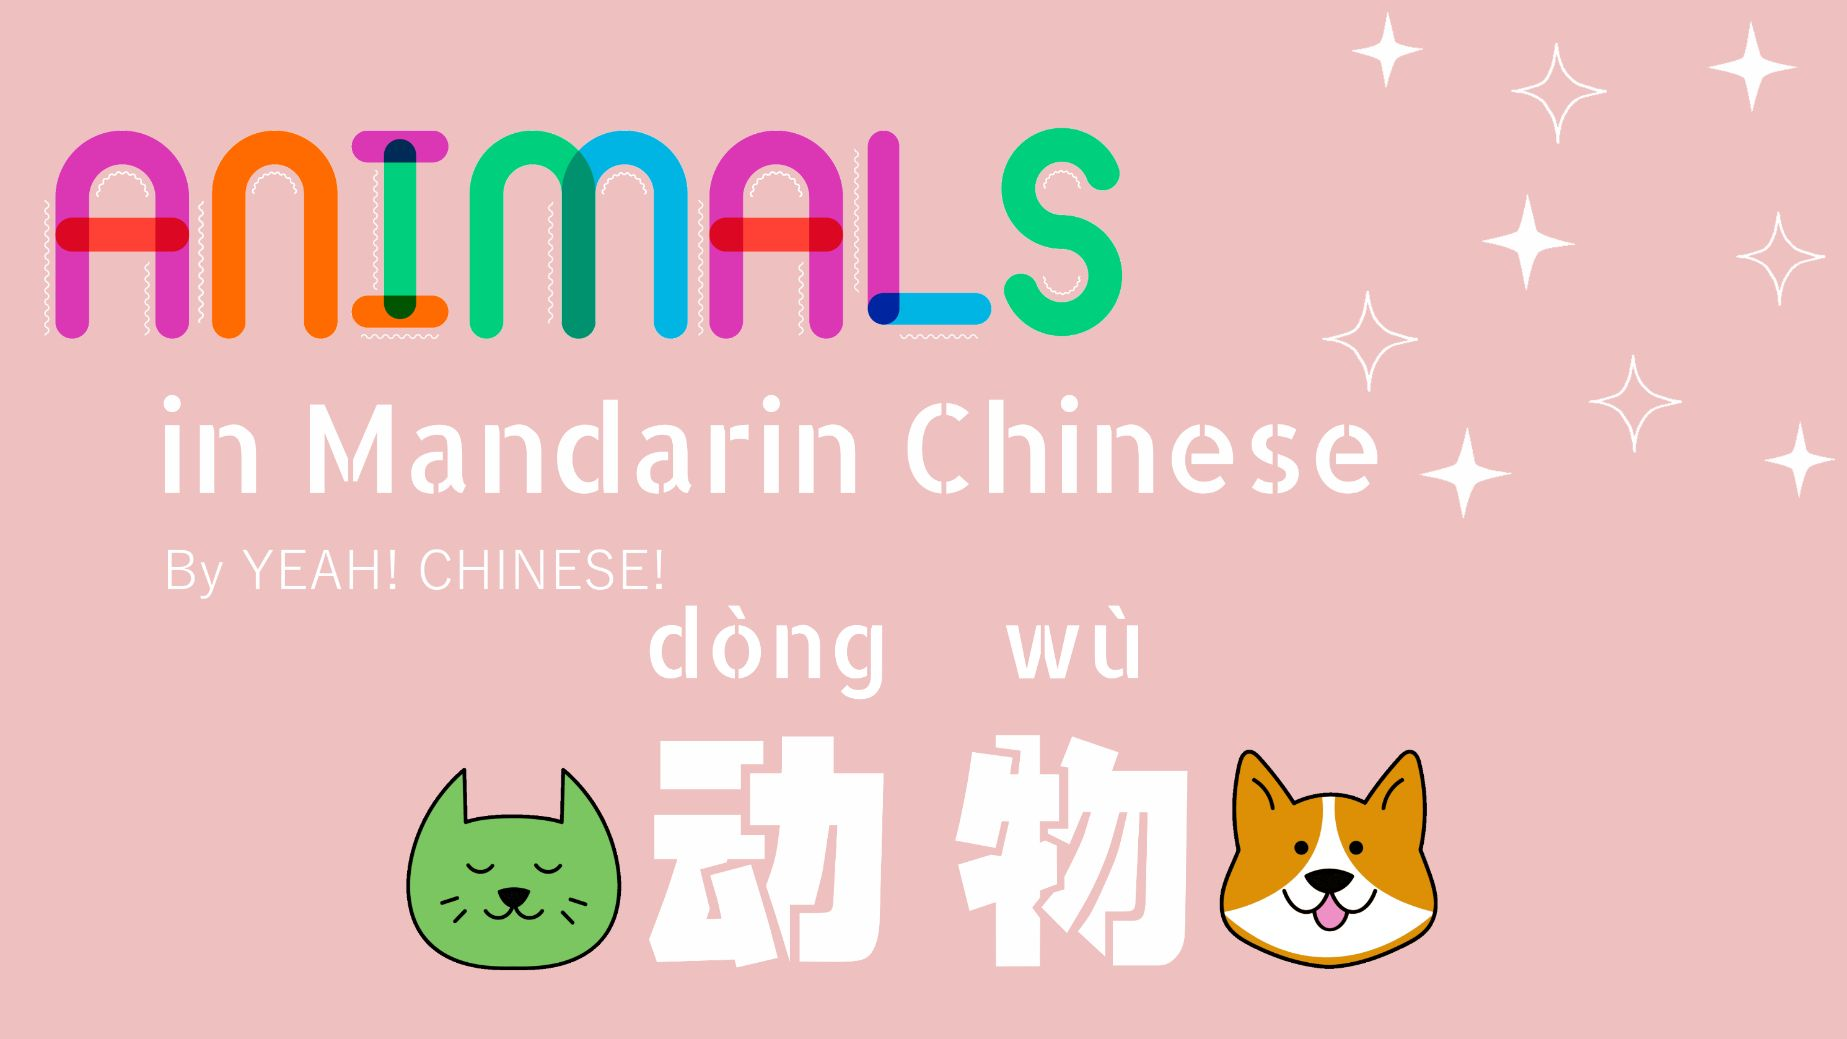 All About Animals (in Mandarin Chinese) - 动物